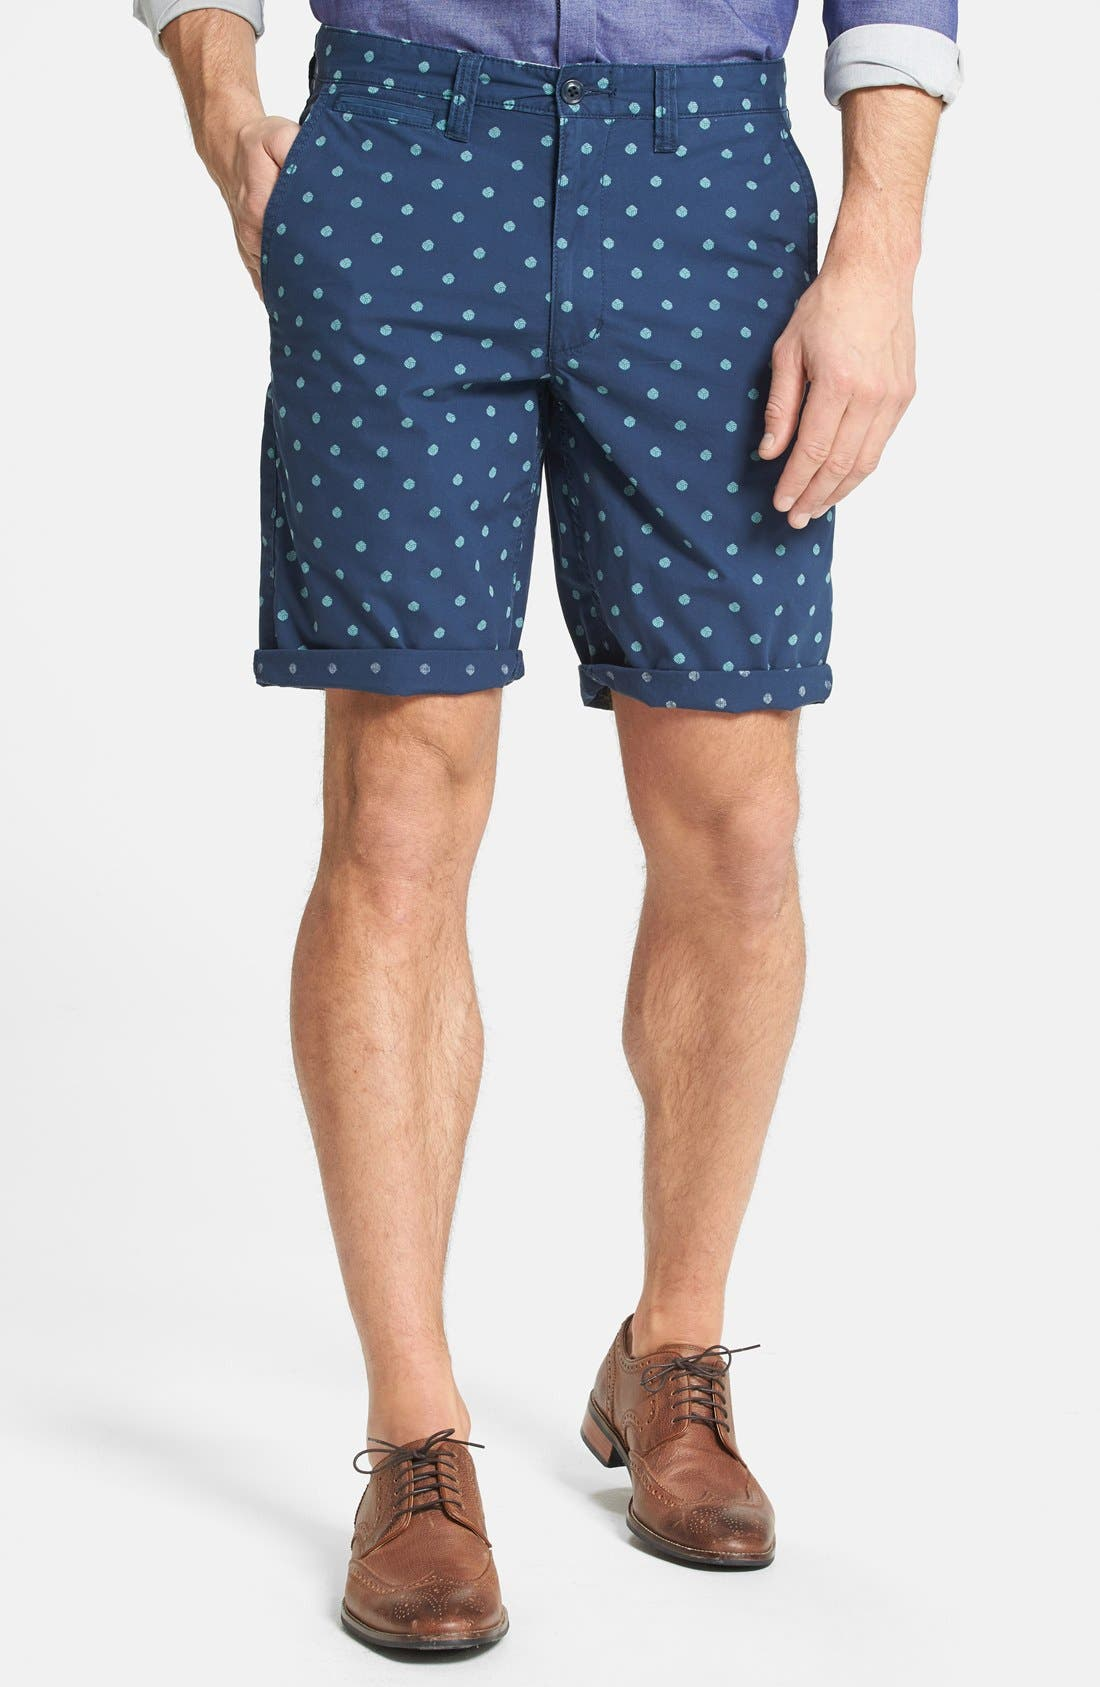 Alternate Image 1 Selected - Dockers® 'Tie Knot' Print Shorts